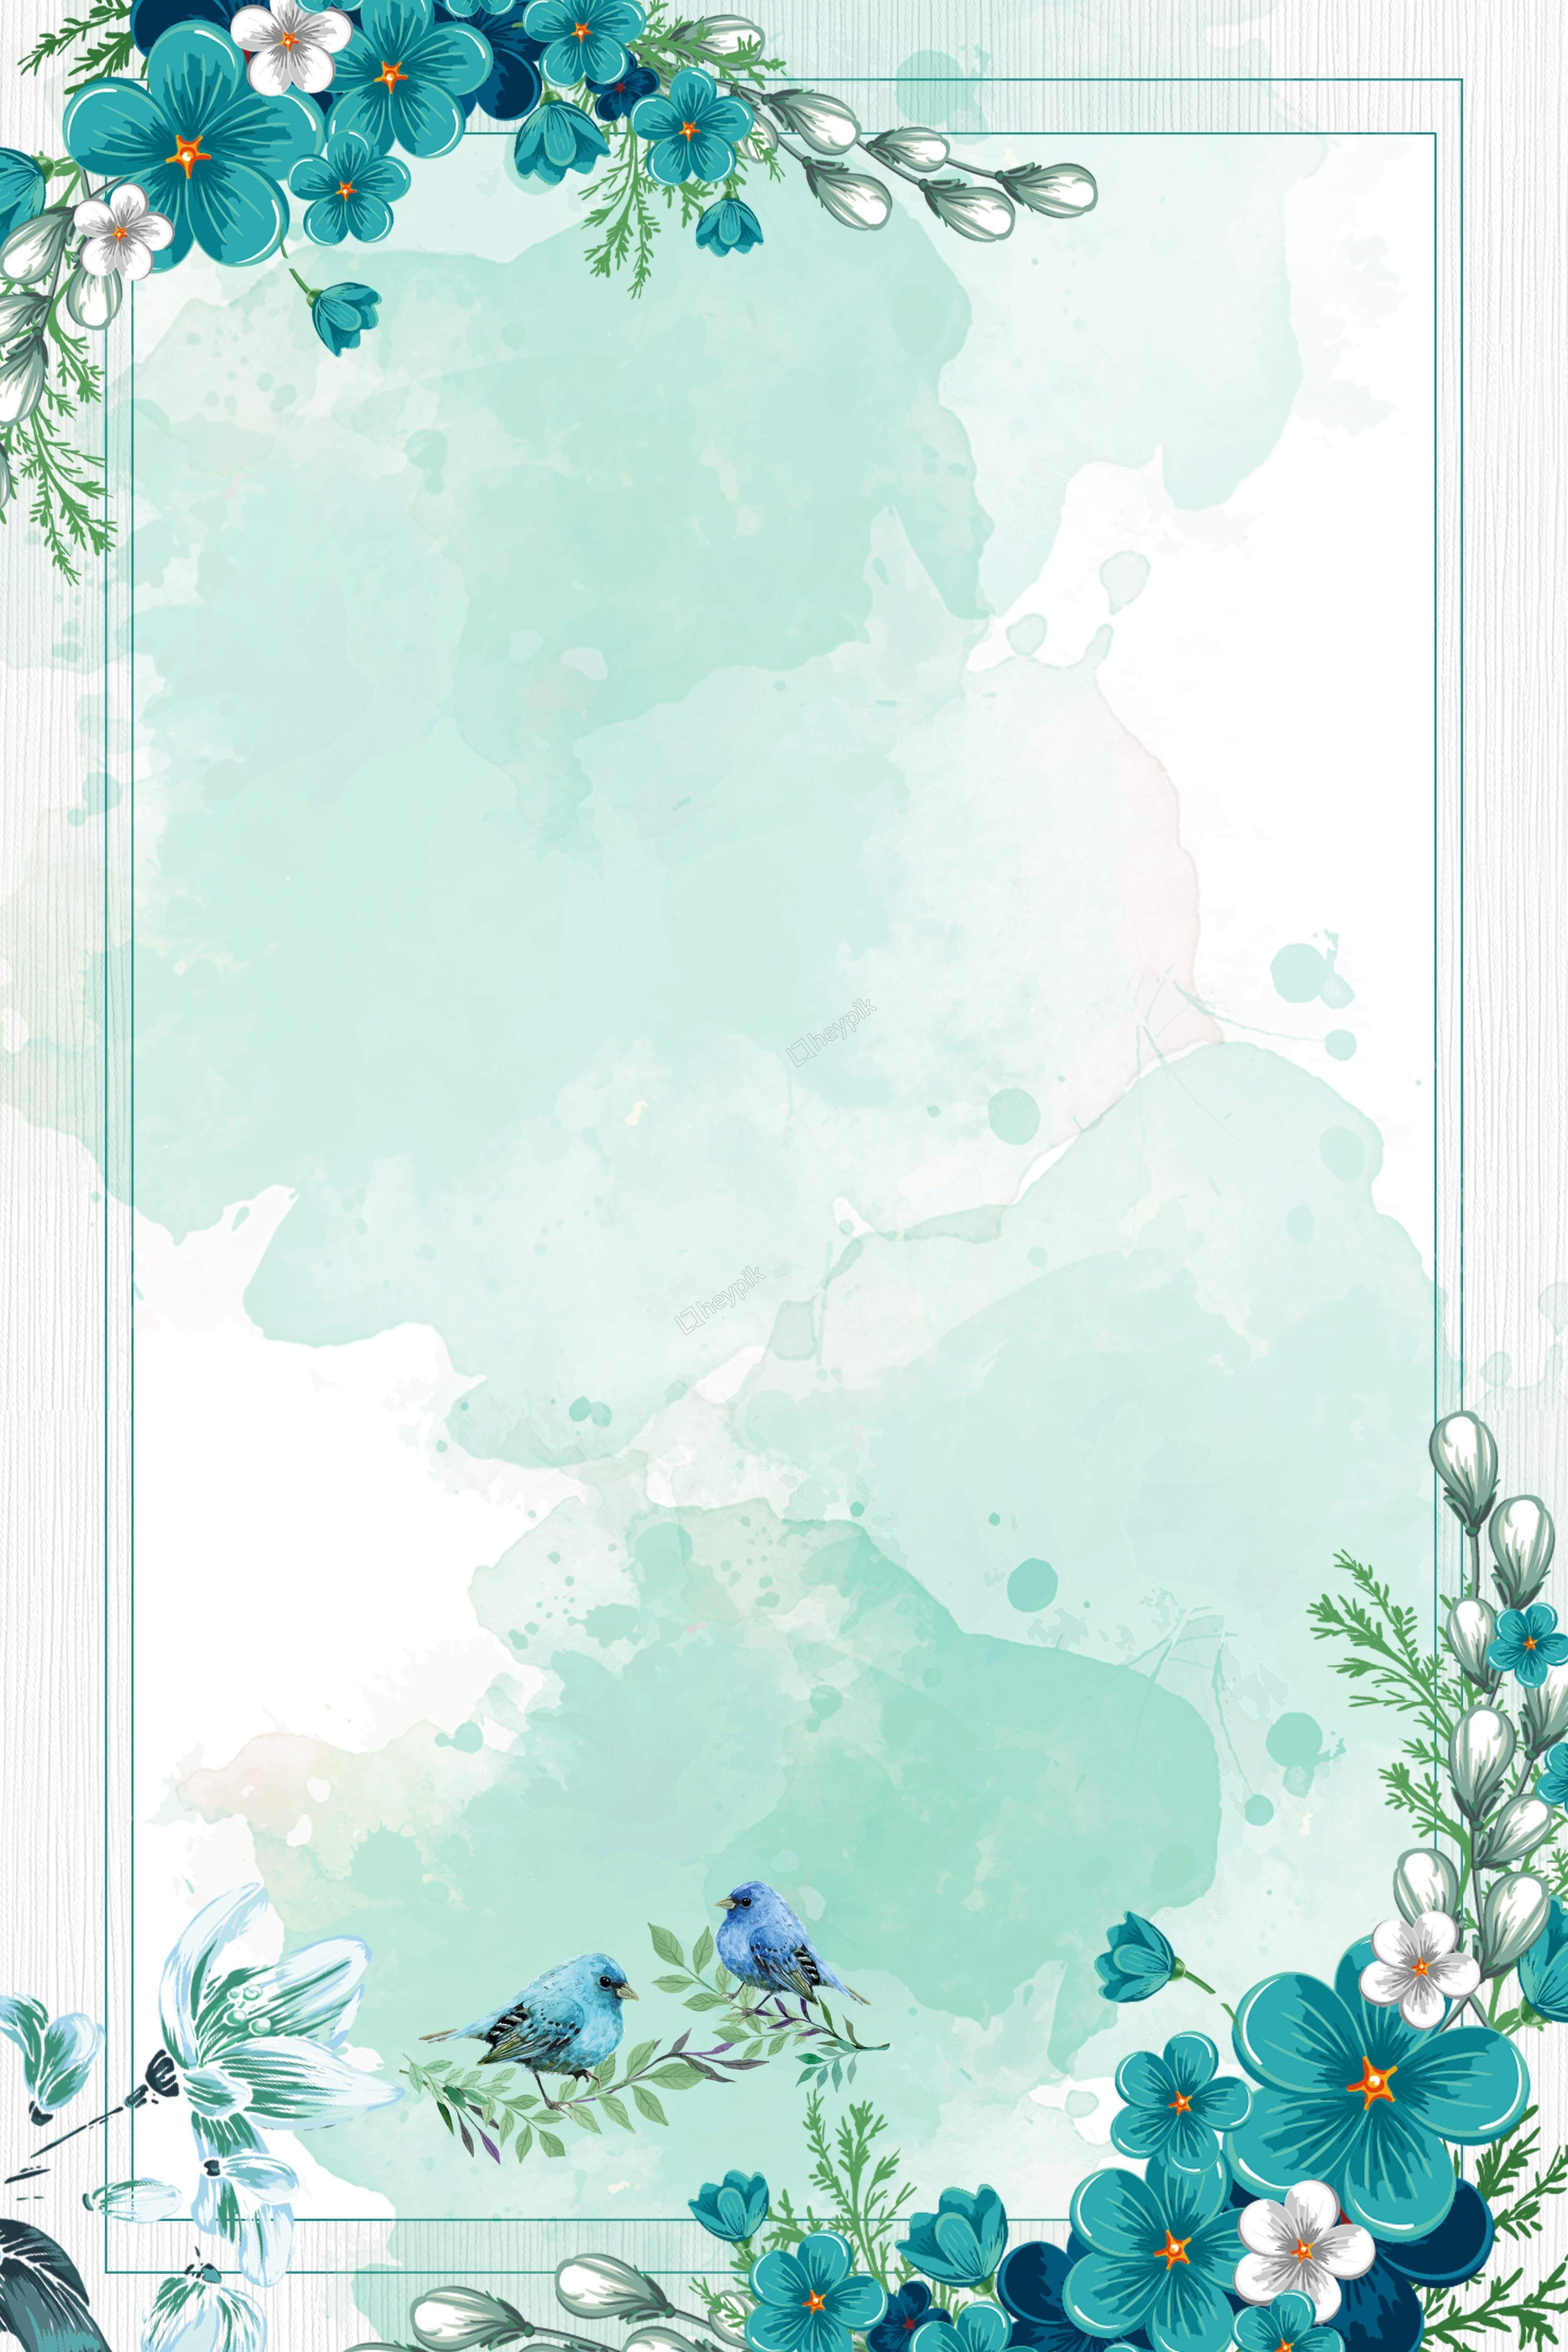 chinese style watercolor blue flowers border background vector #powerpoint chinese style watercolor blue flowers border background vector #blueflowerwallpaper